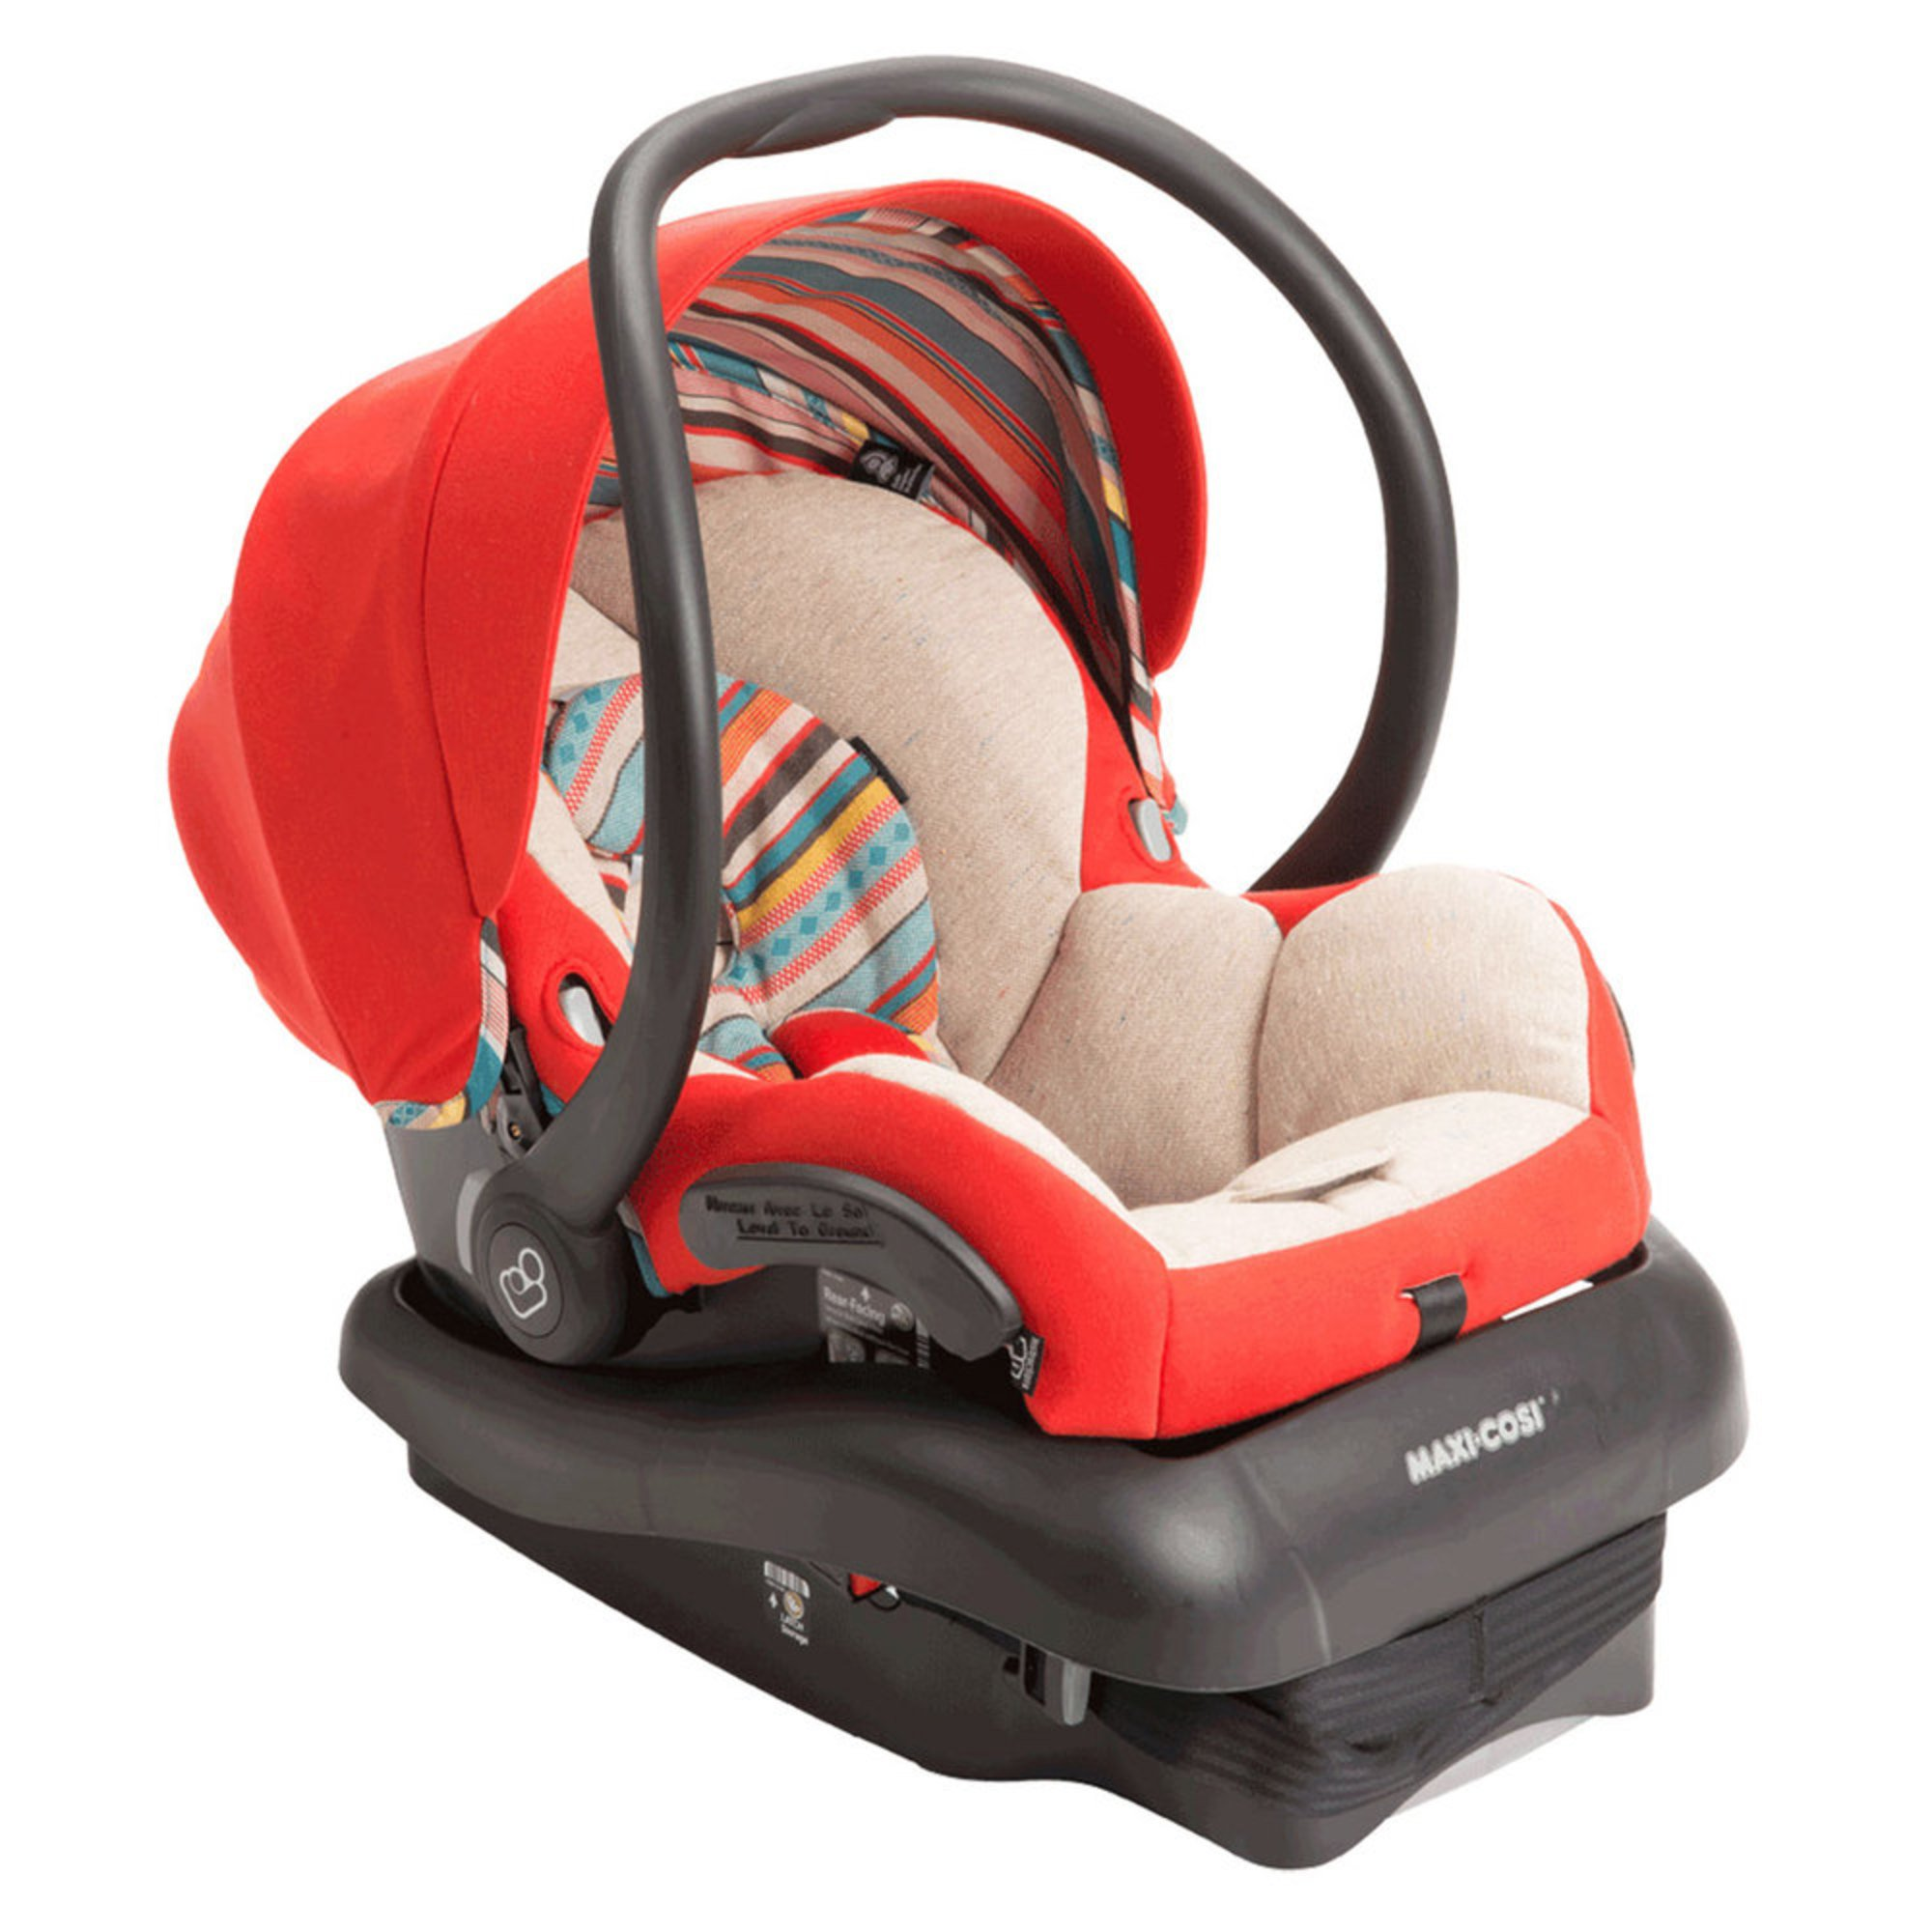 maxi cosi mico ap special edition infant car seat bohemian red infant car seats baby kids. Black Bedroom Furniture Sets. Home Design Ideas